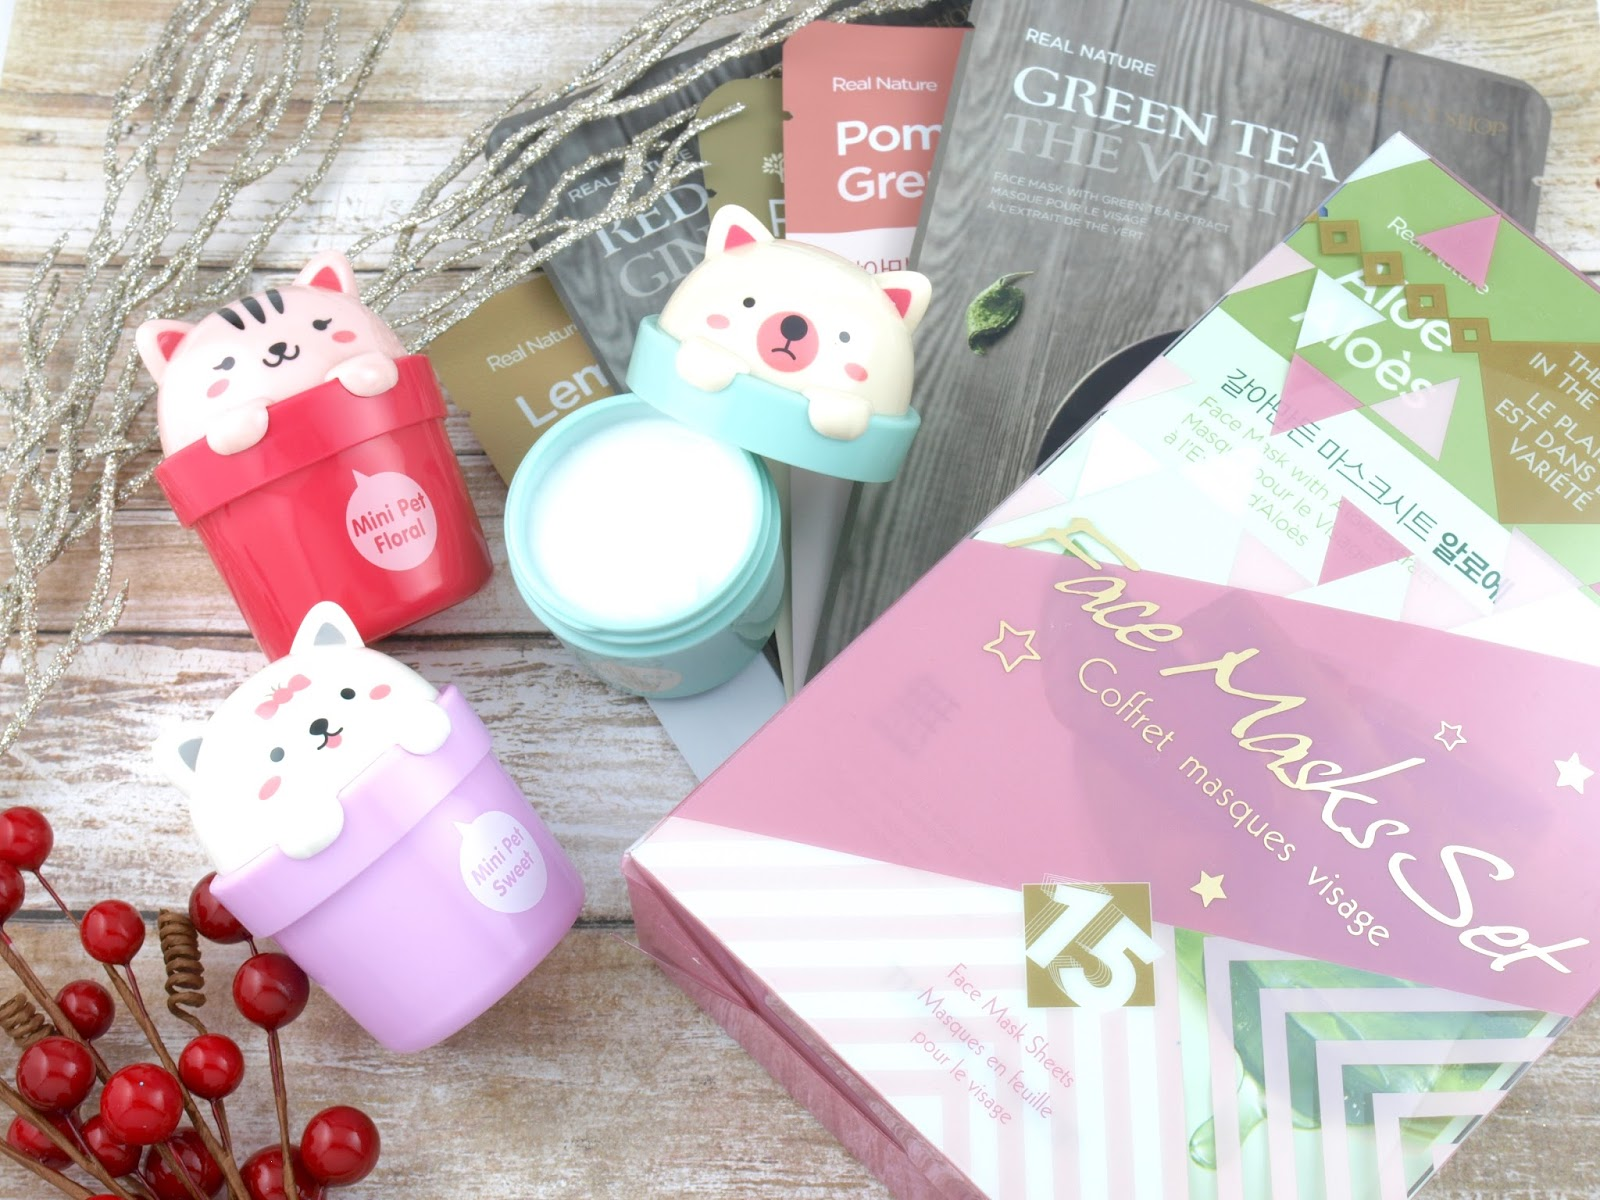 THEFACESHOP Holiday 2016 Gift Guide